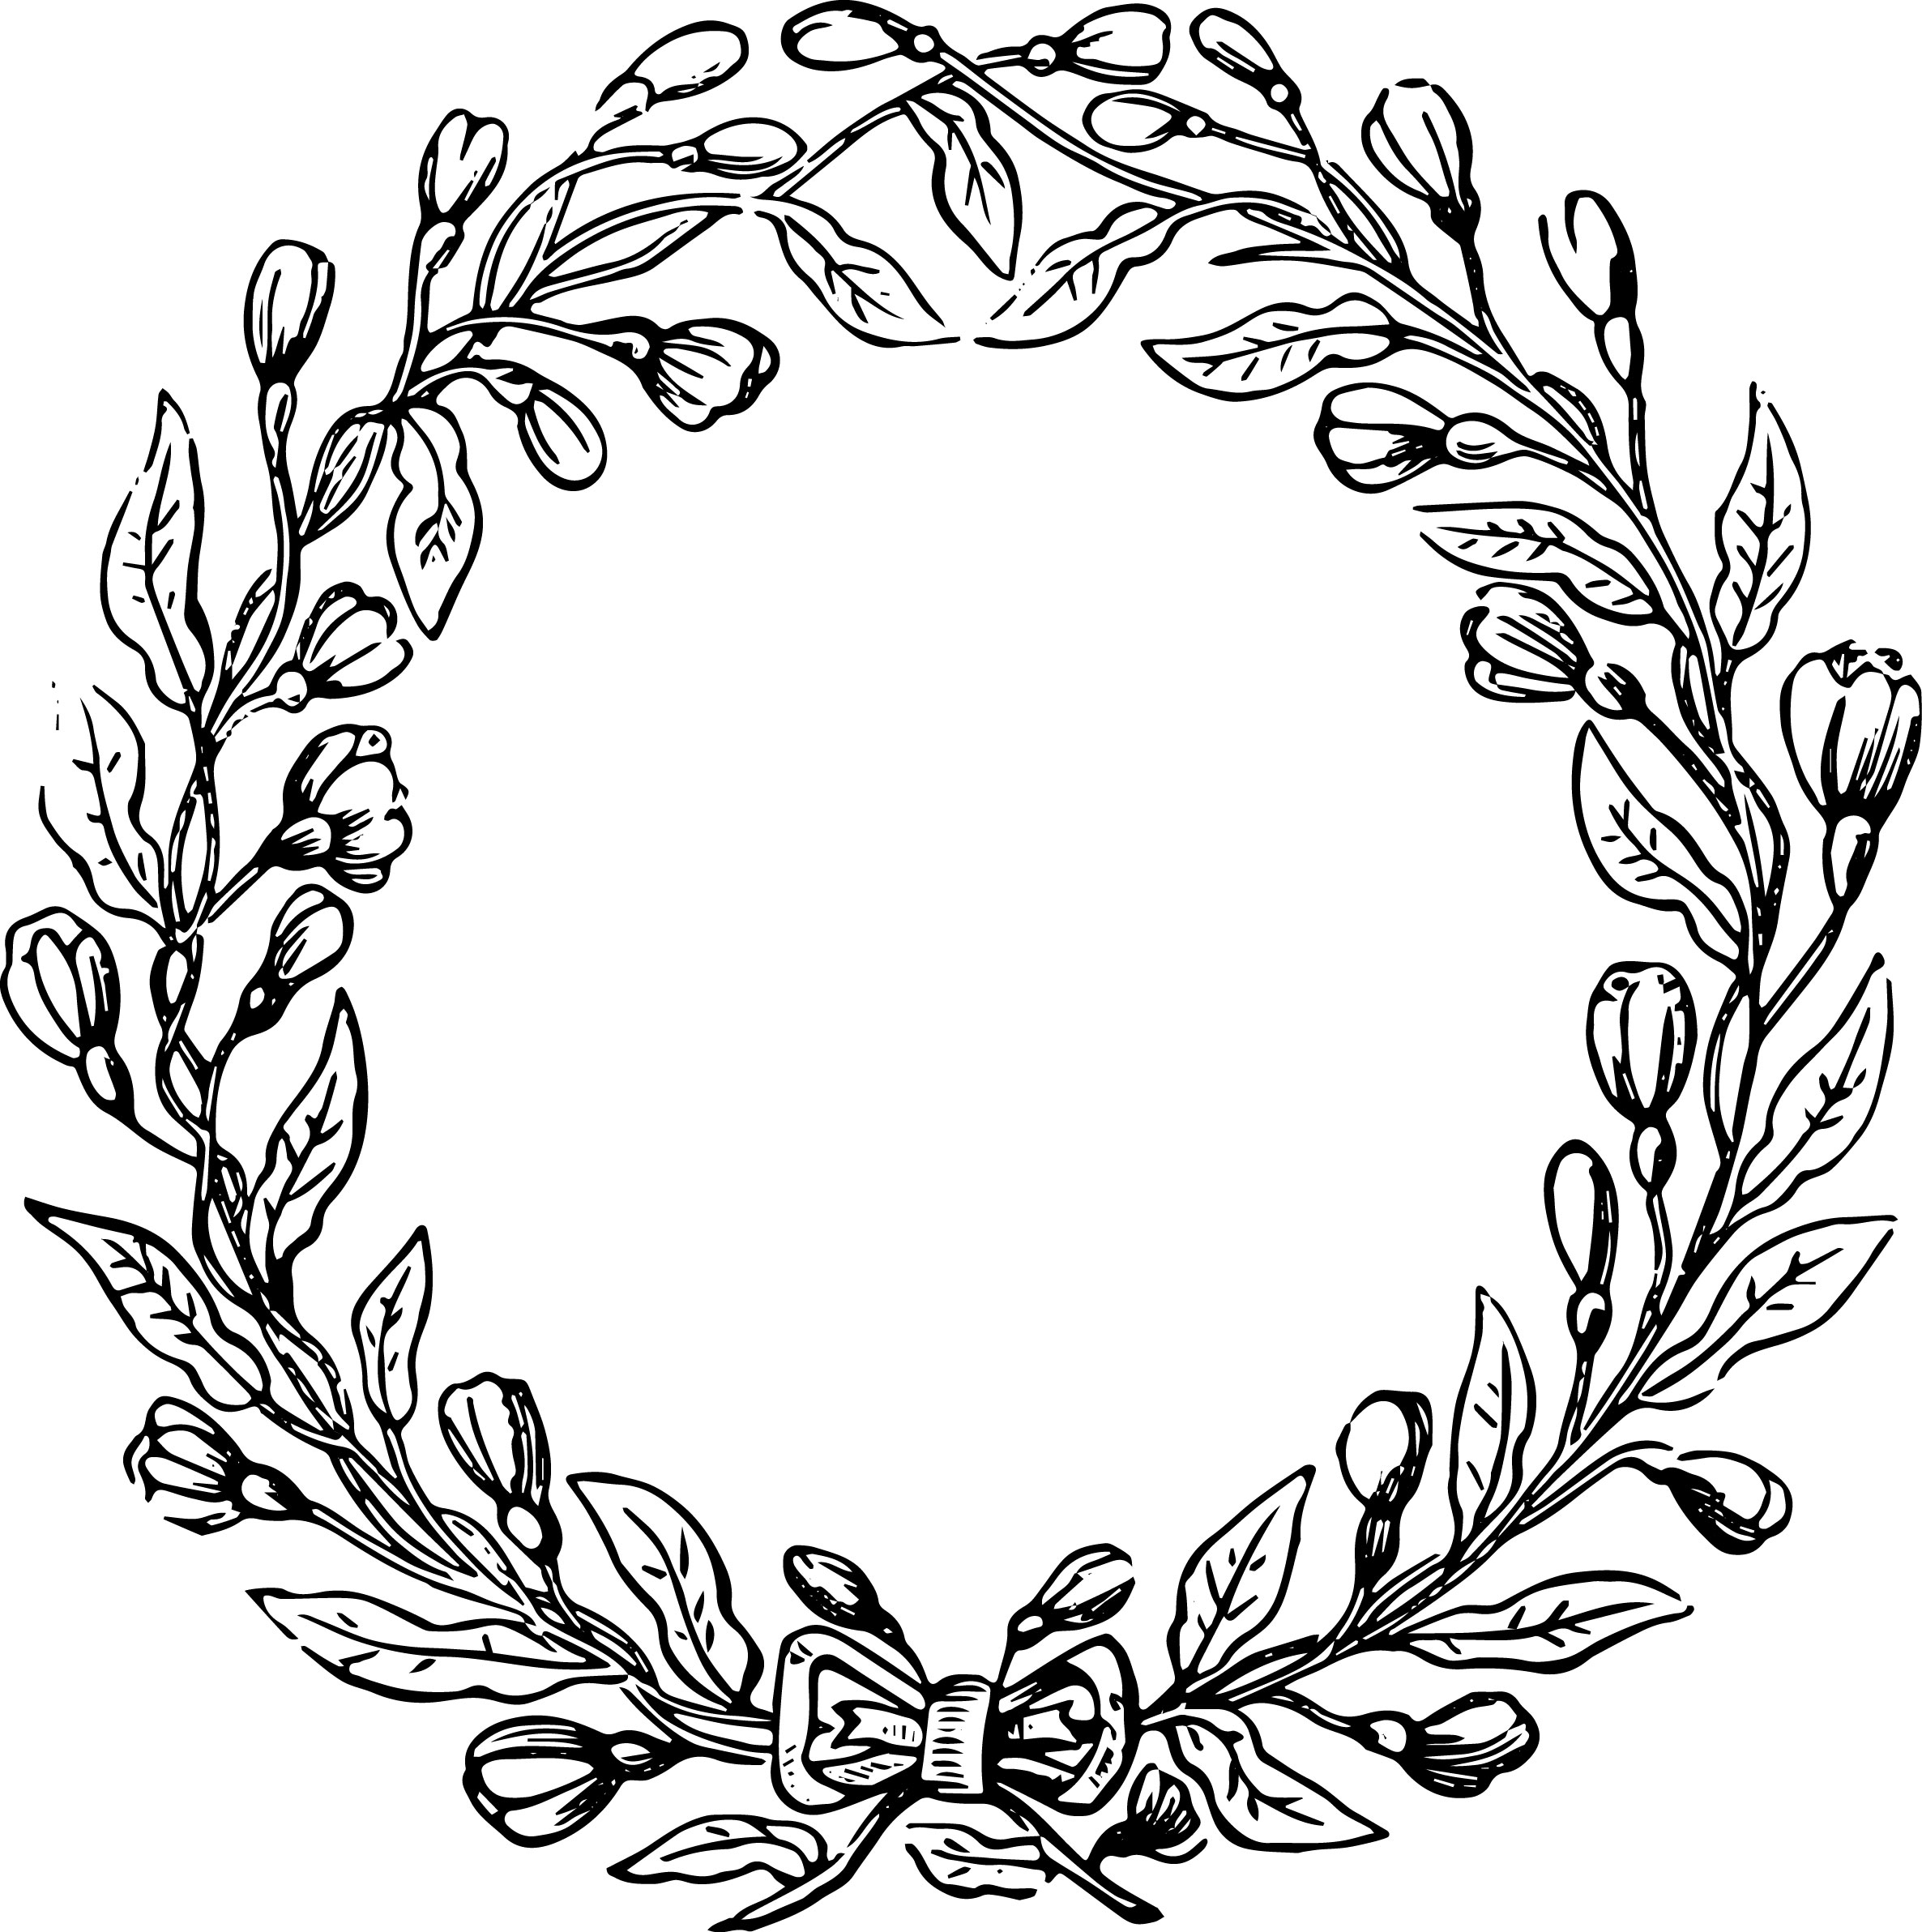 Free Leaves Garland Cliparts, Download Free Clip Art, Free Clip Art.